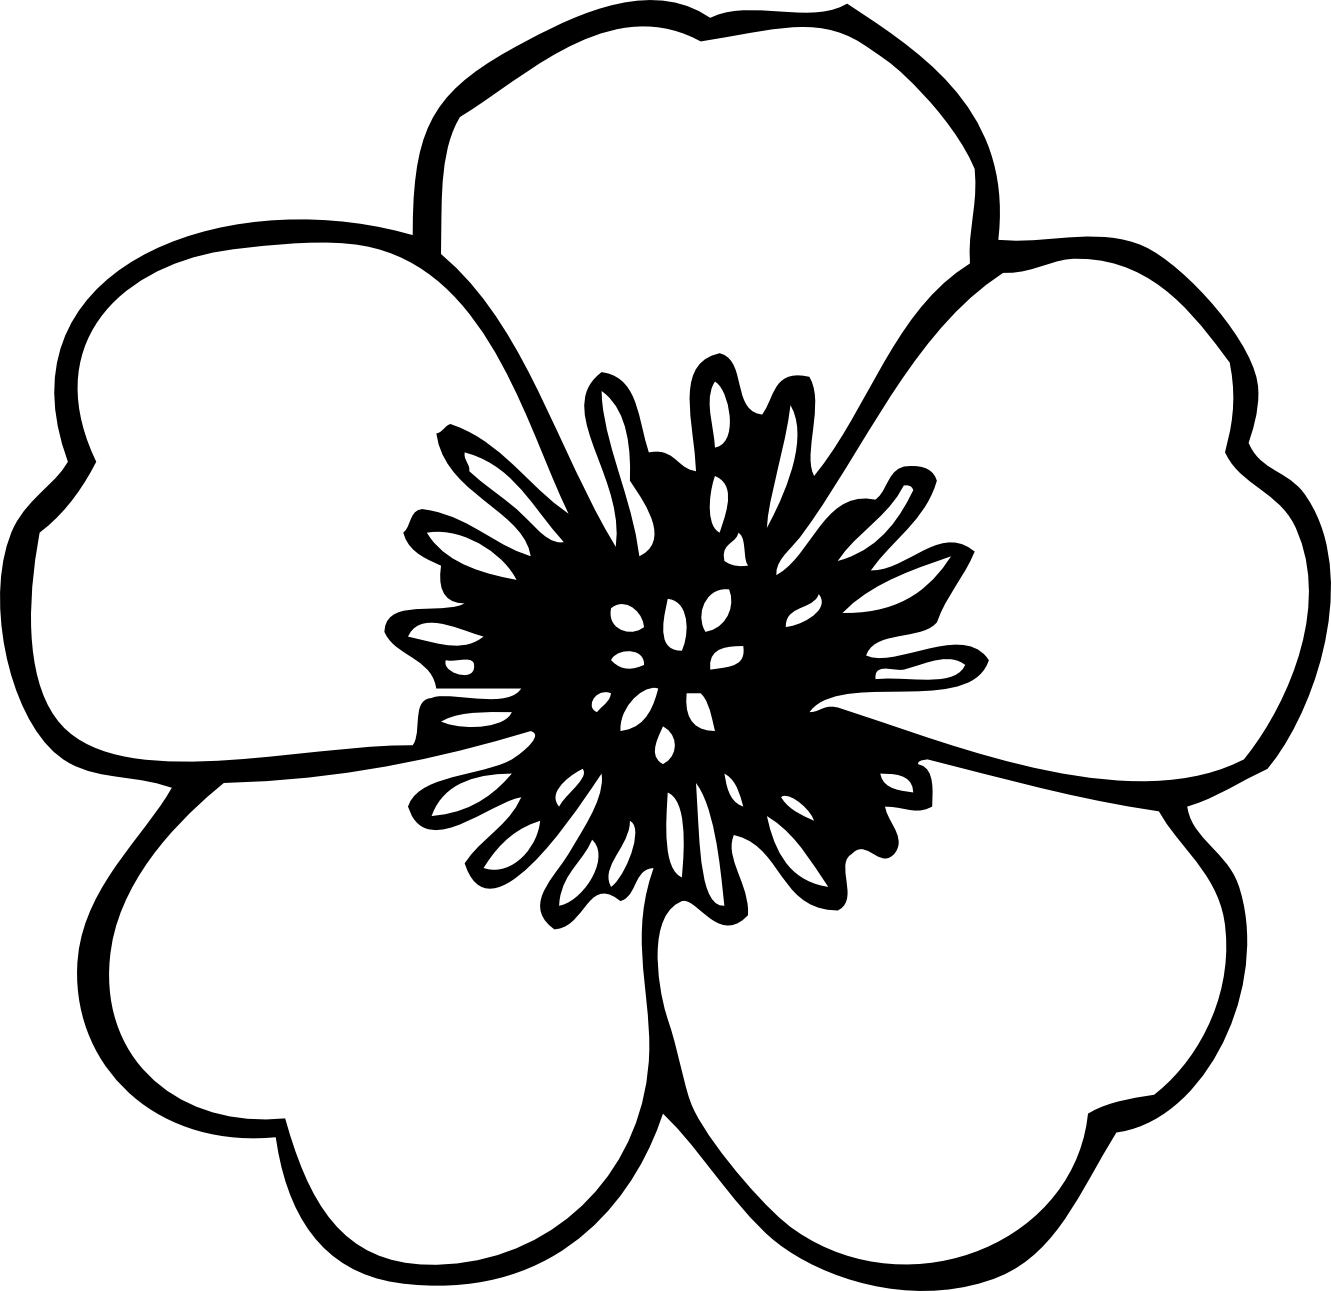 Clipart images of flwers black and white svg freeuse download Free Flower Images Black And White, Download Free Clip Art, Free ... svg freeuse download